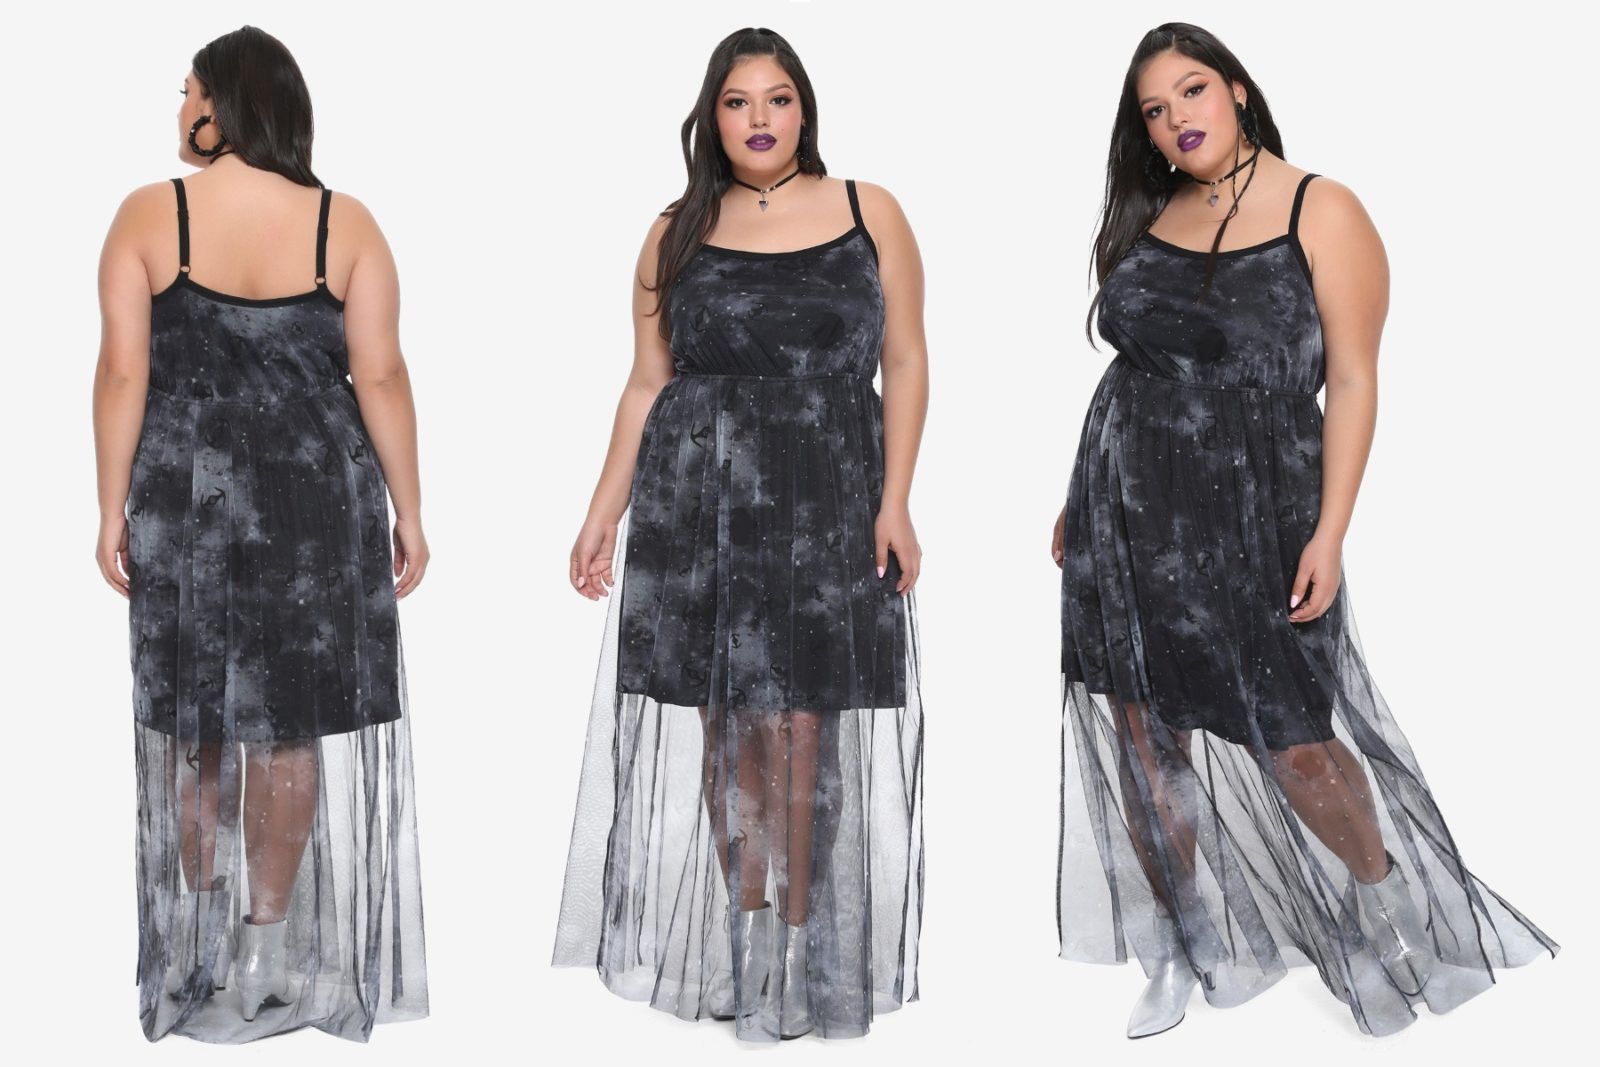 Plus Size Starfighter Maxi Dress at Hot Topic